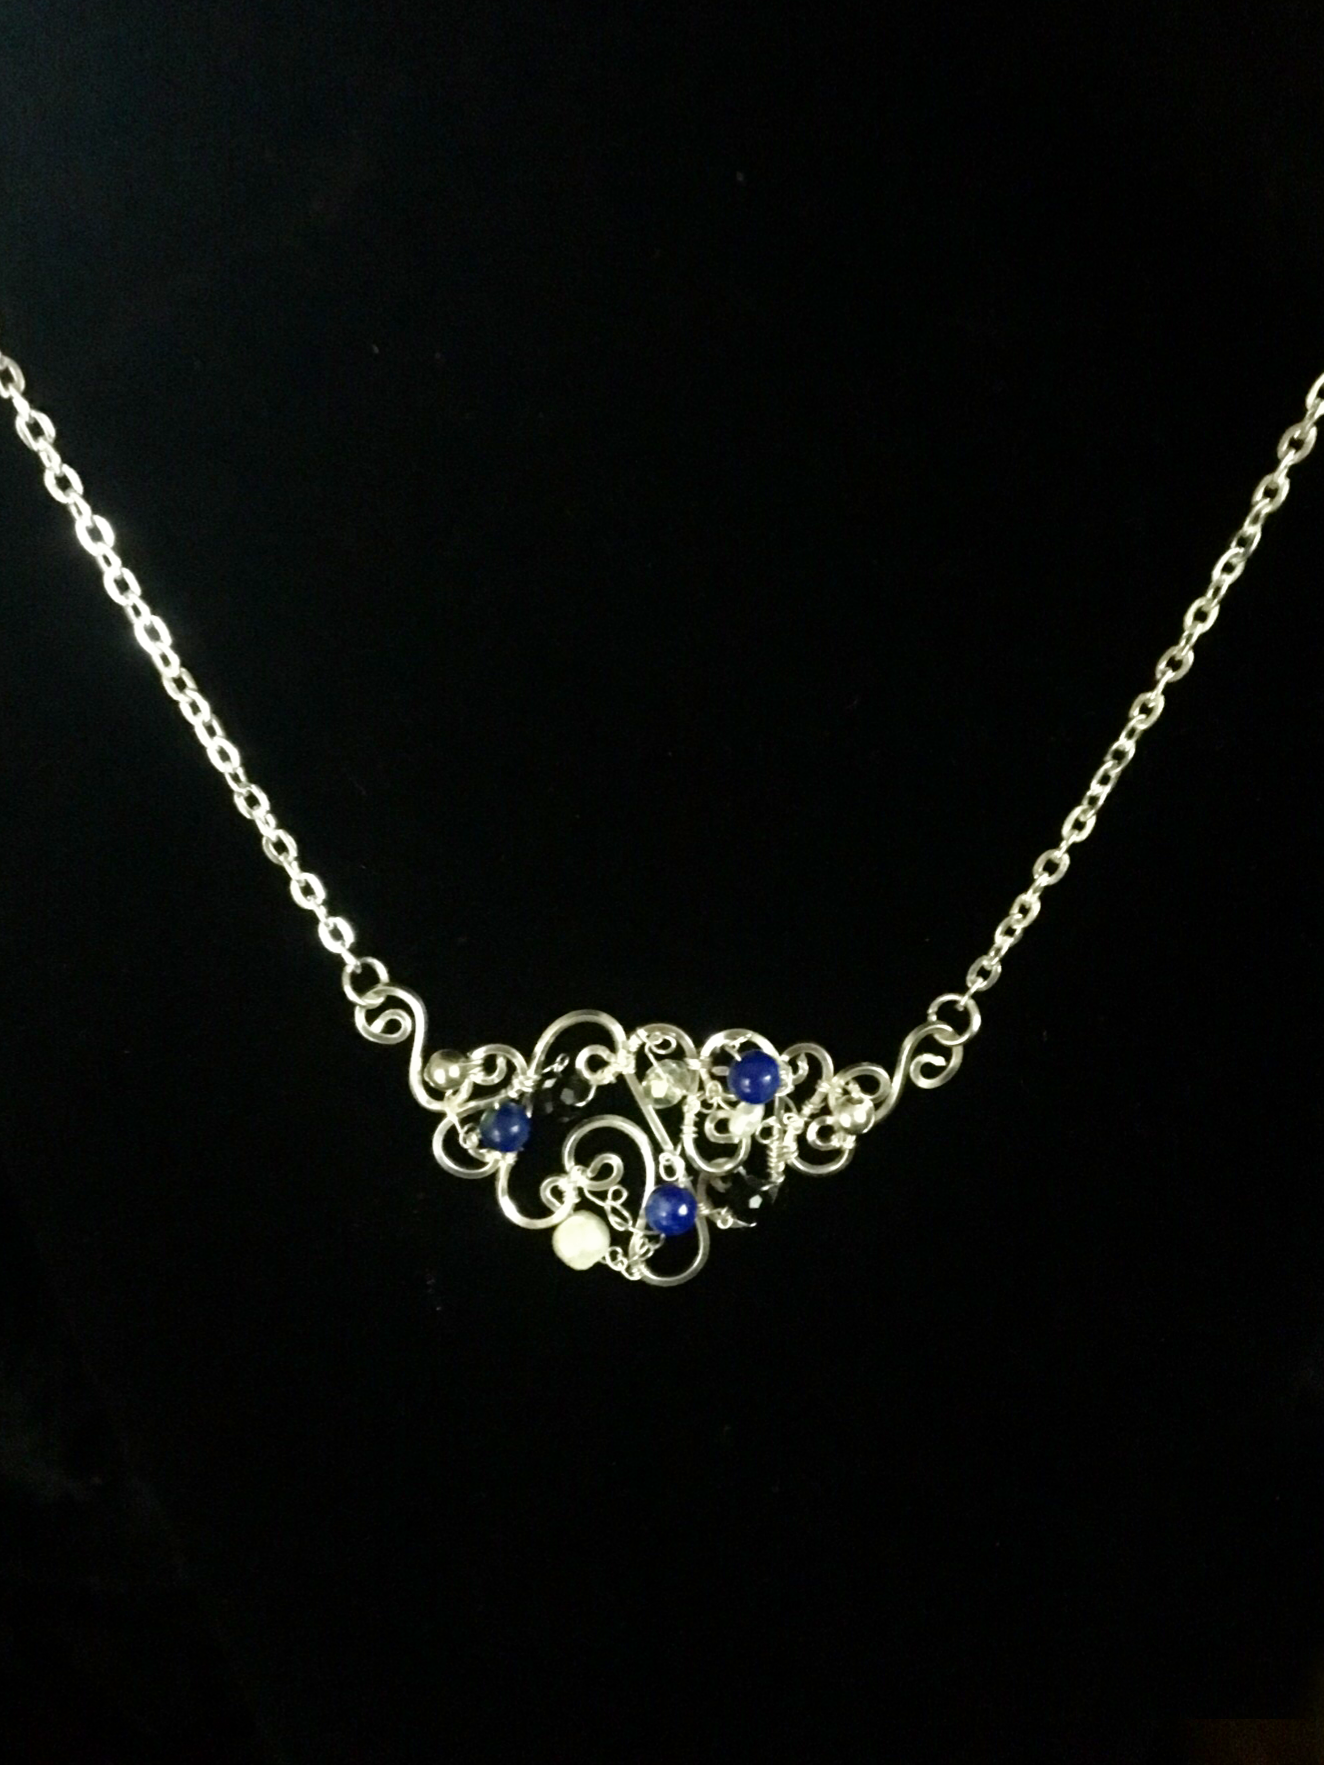 Dainty Deva Necklace - Pearls and Lapis Lazuli - Silver Plated